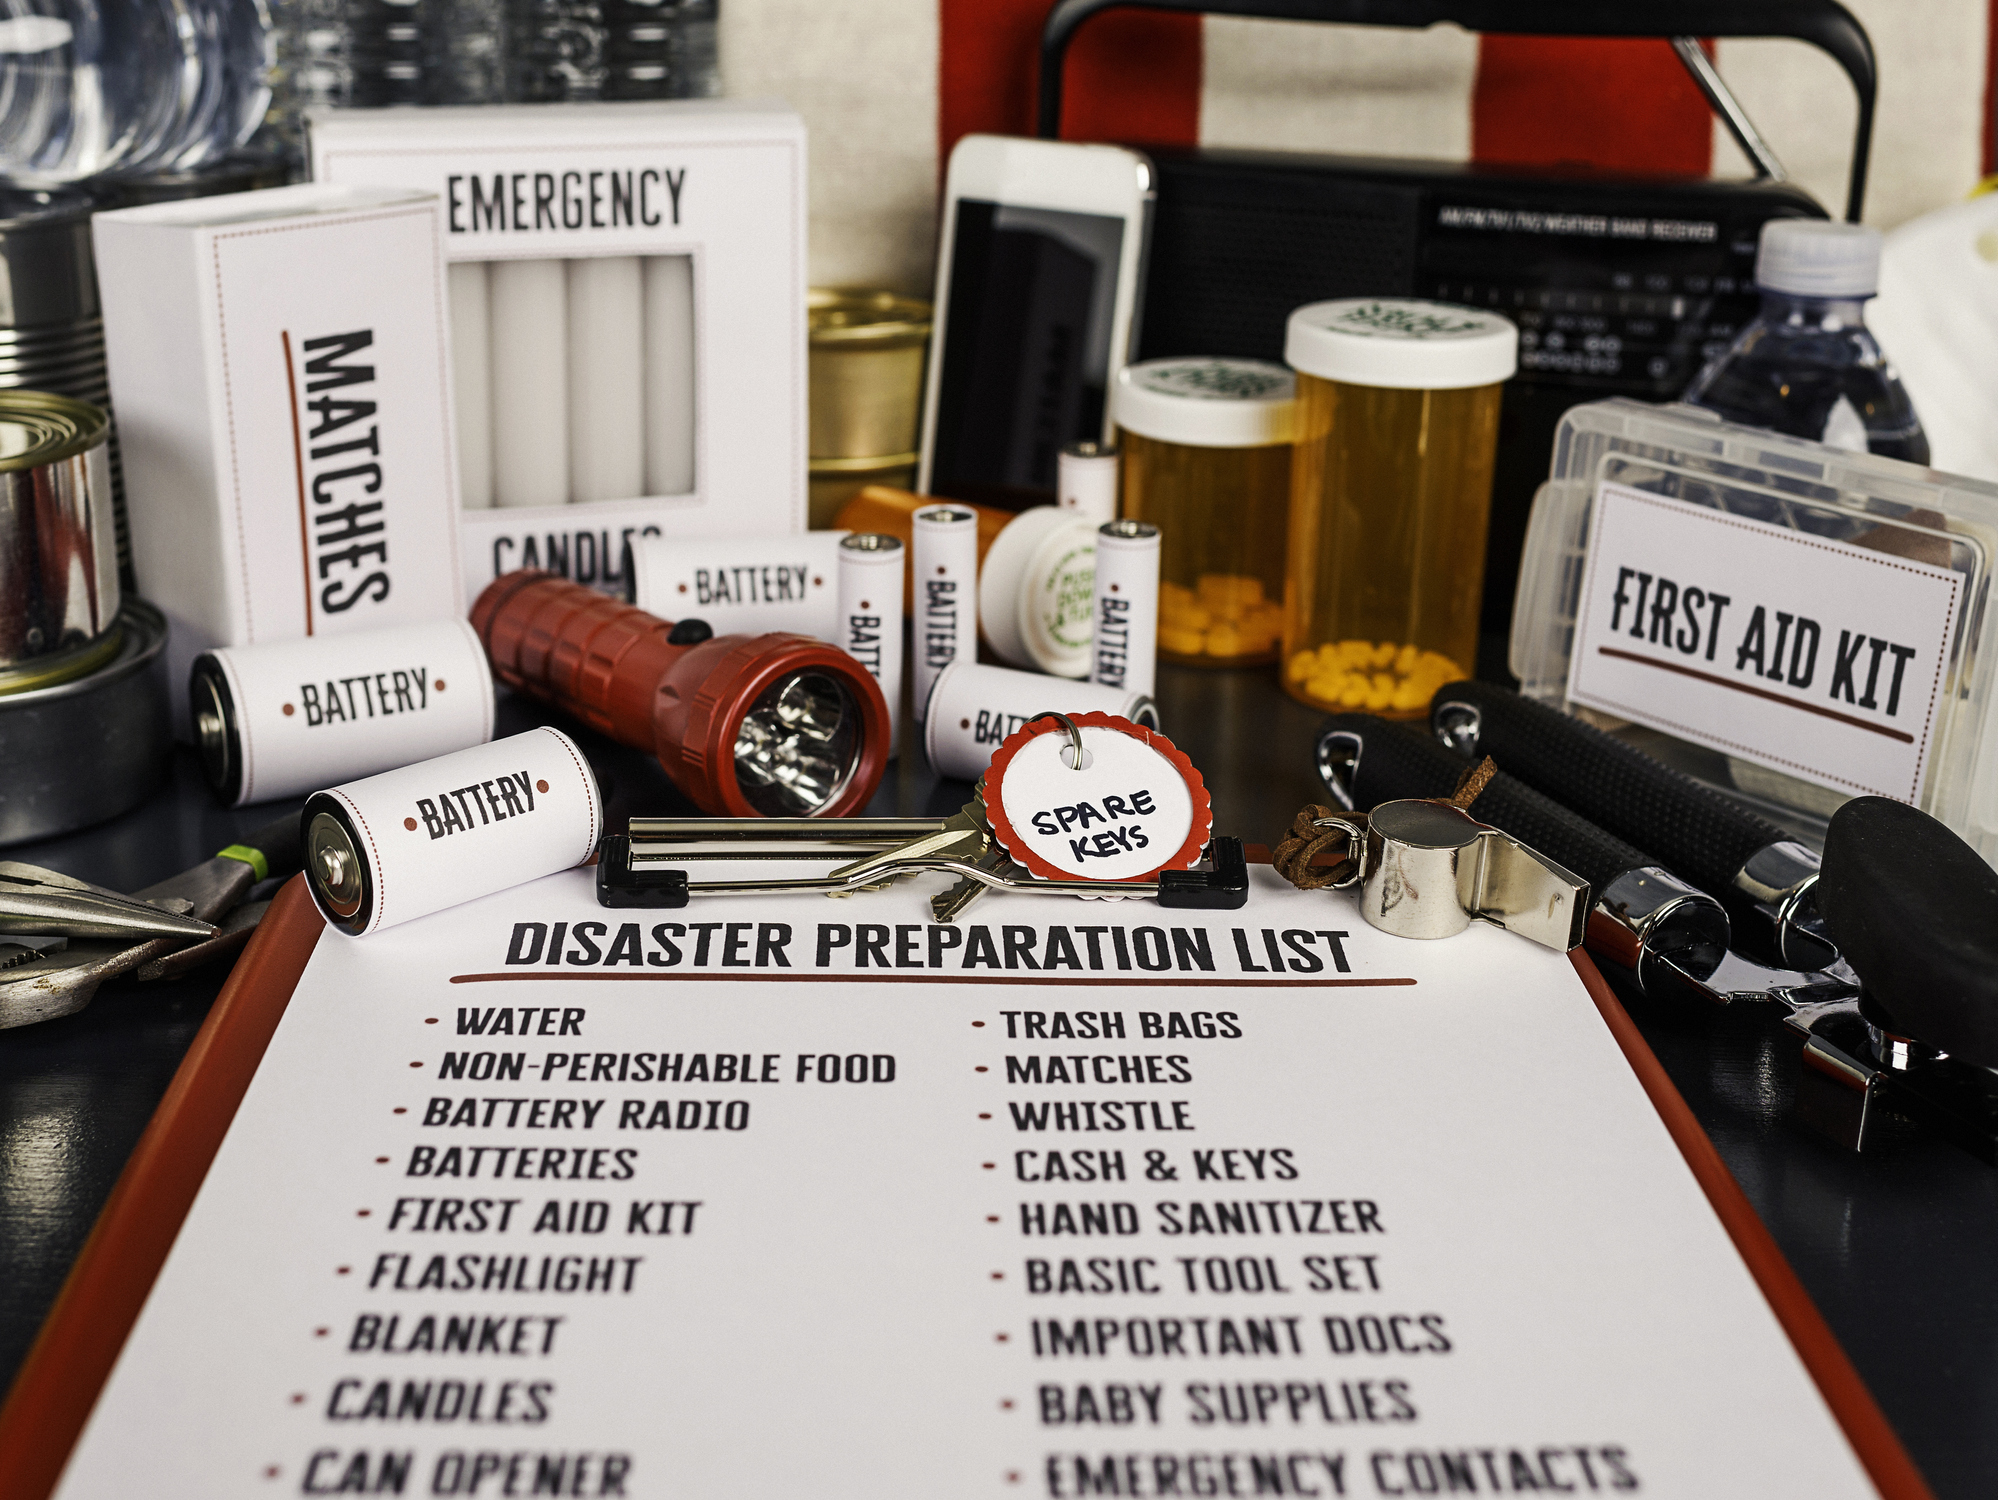 How Prepared Are You for an Emergency? Lake Point Advisory Group